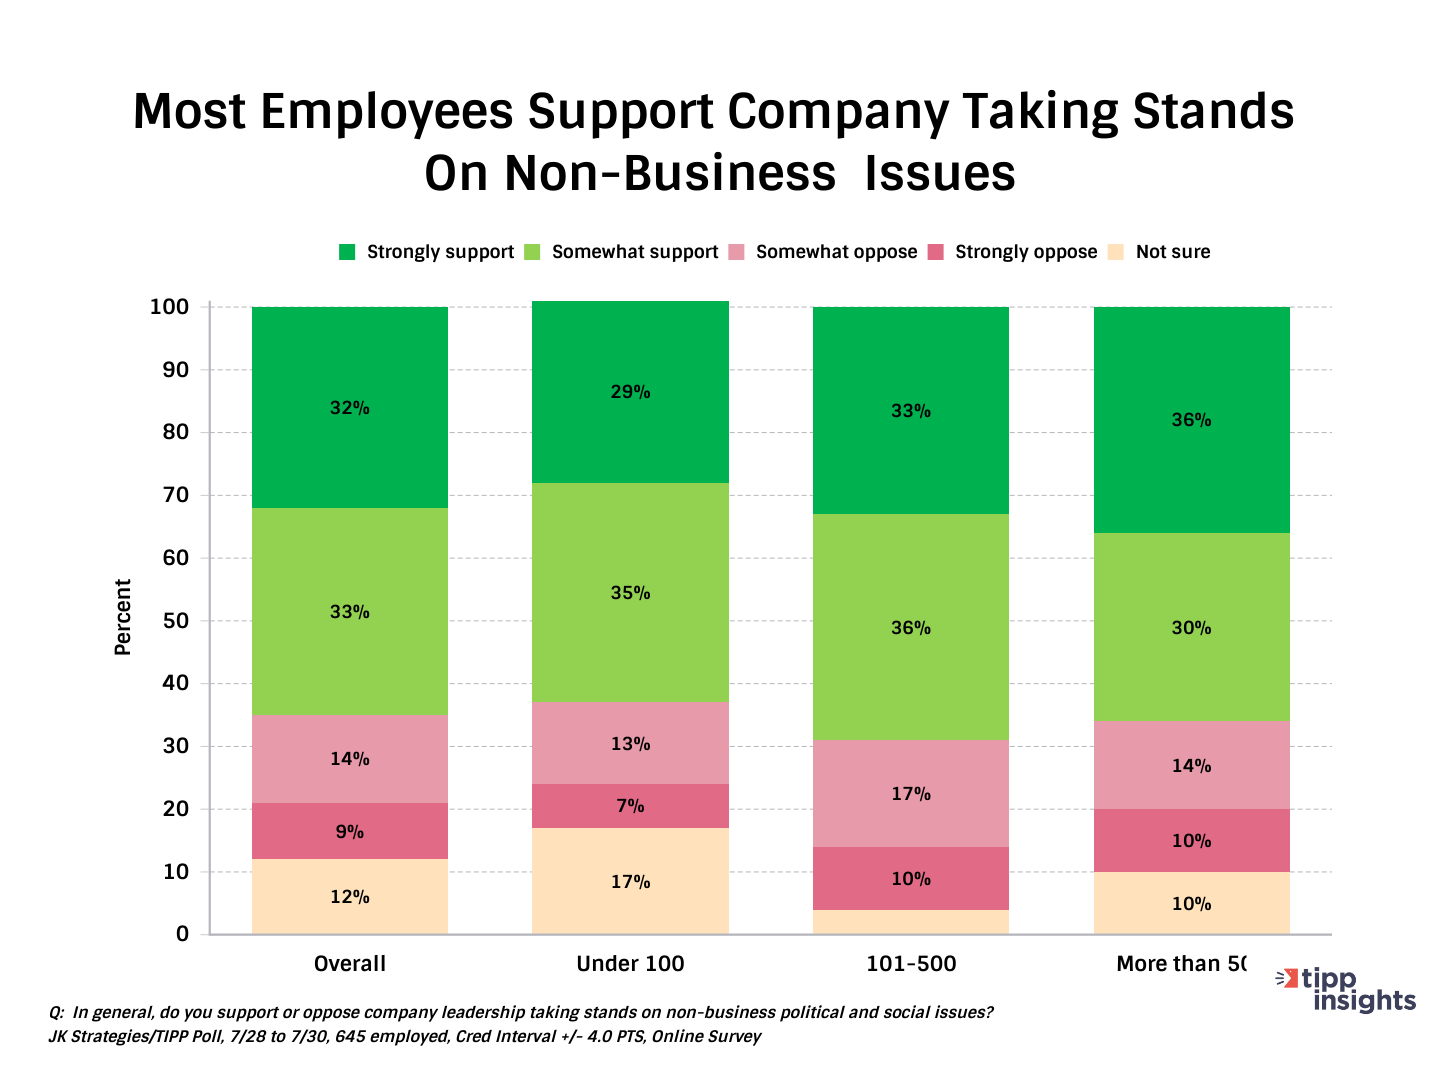 TIPP/JK Strategies Results Americans supporting companies taking stands on non buisiness issues